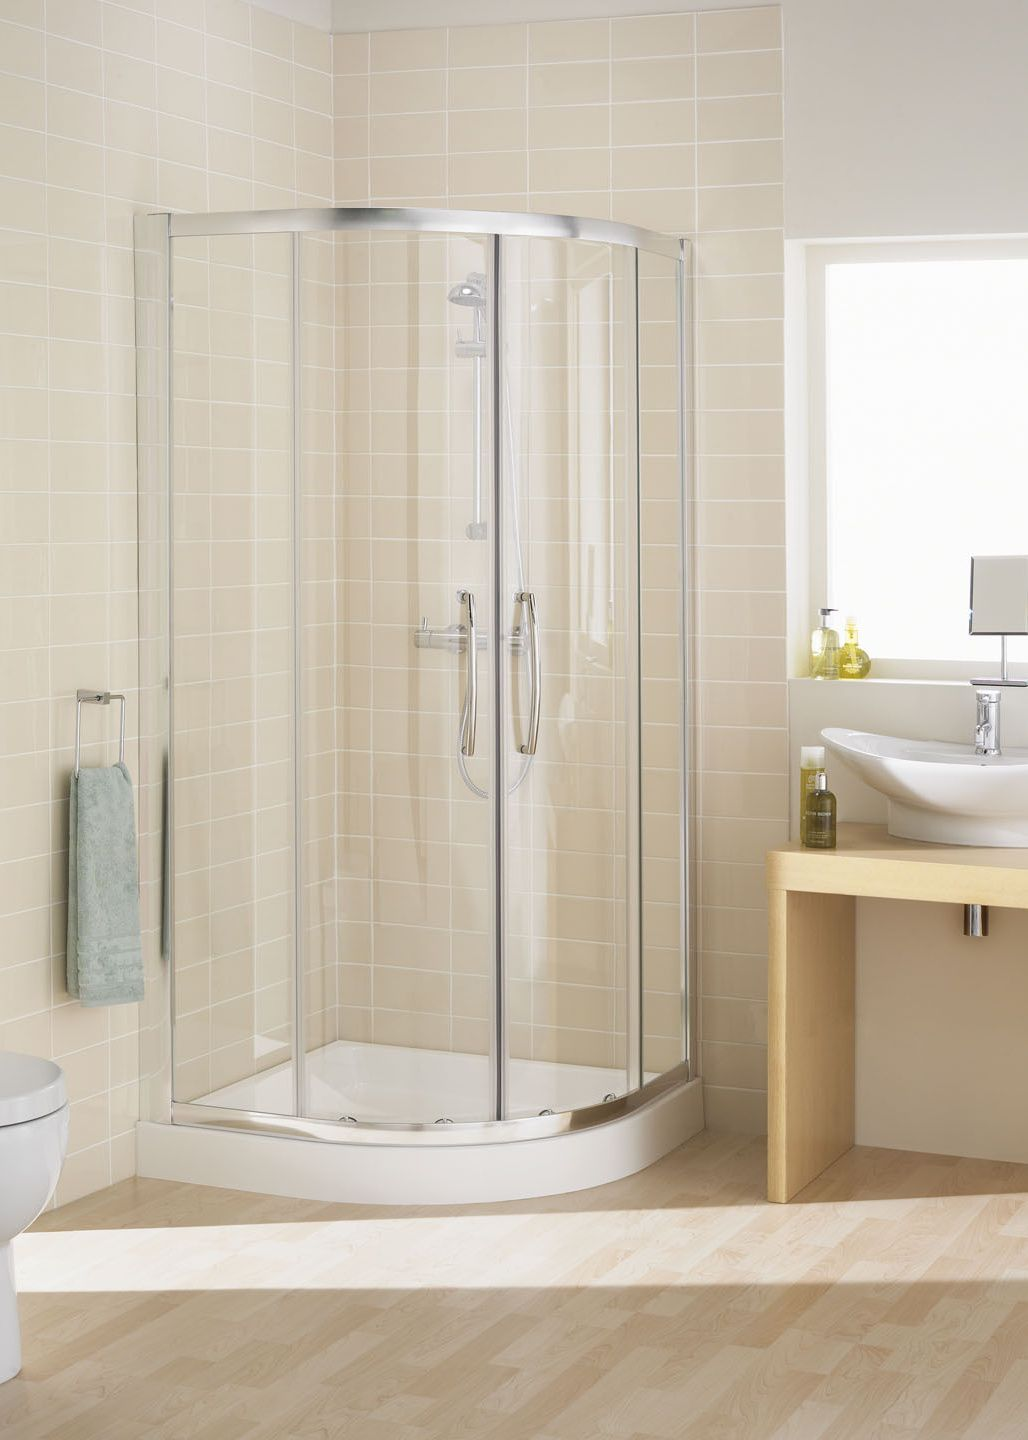 Double Door Offset Quadrant Semi Frameless Shower Enclosures Quadrant Shower Enclosures Quadrant Shower Corner Shower Enclosures